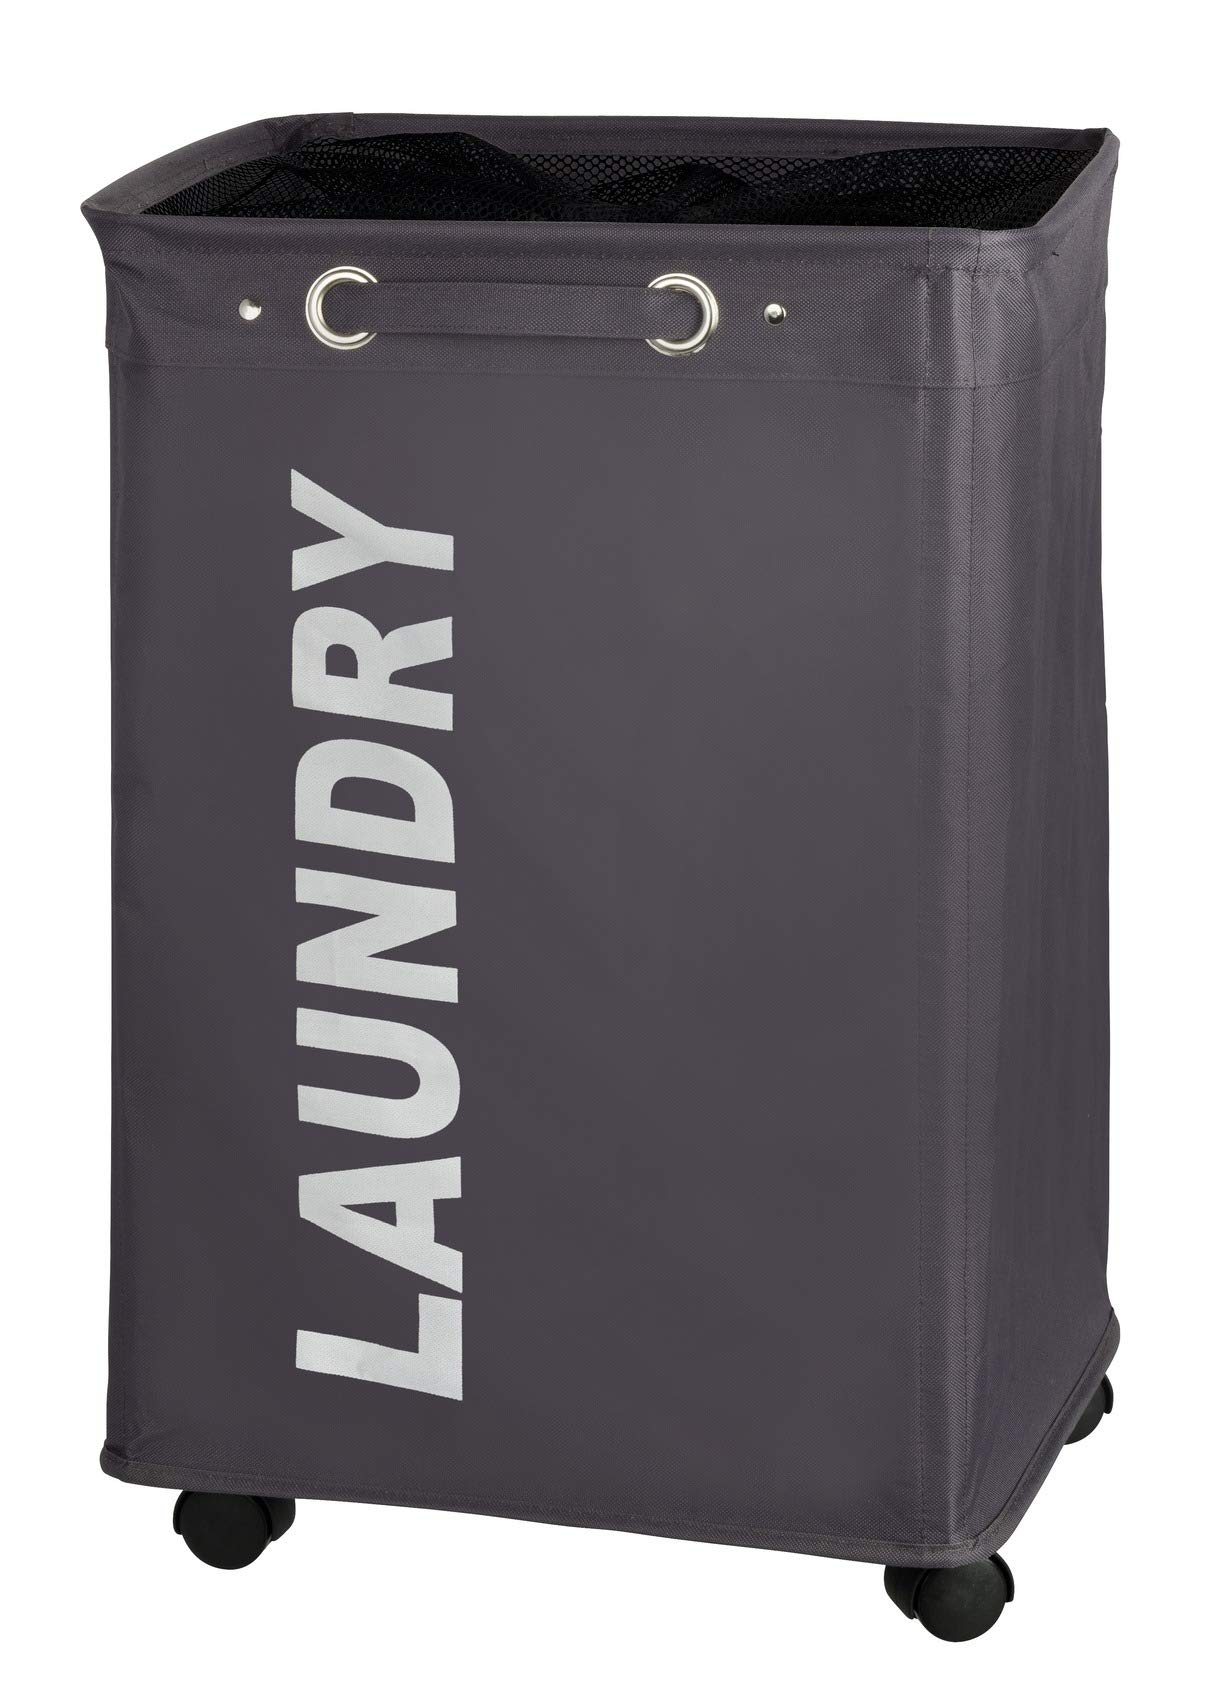 WENKO Grey Quadro Bin, Slim Laundry Basket on Wheels with Handle and Mesh Screen Cover, with Water-Repellent Fabric Inside, 20.86 Gallon, 15.7 x 23.6 x 13 inch